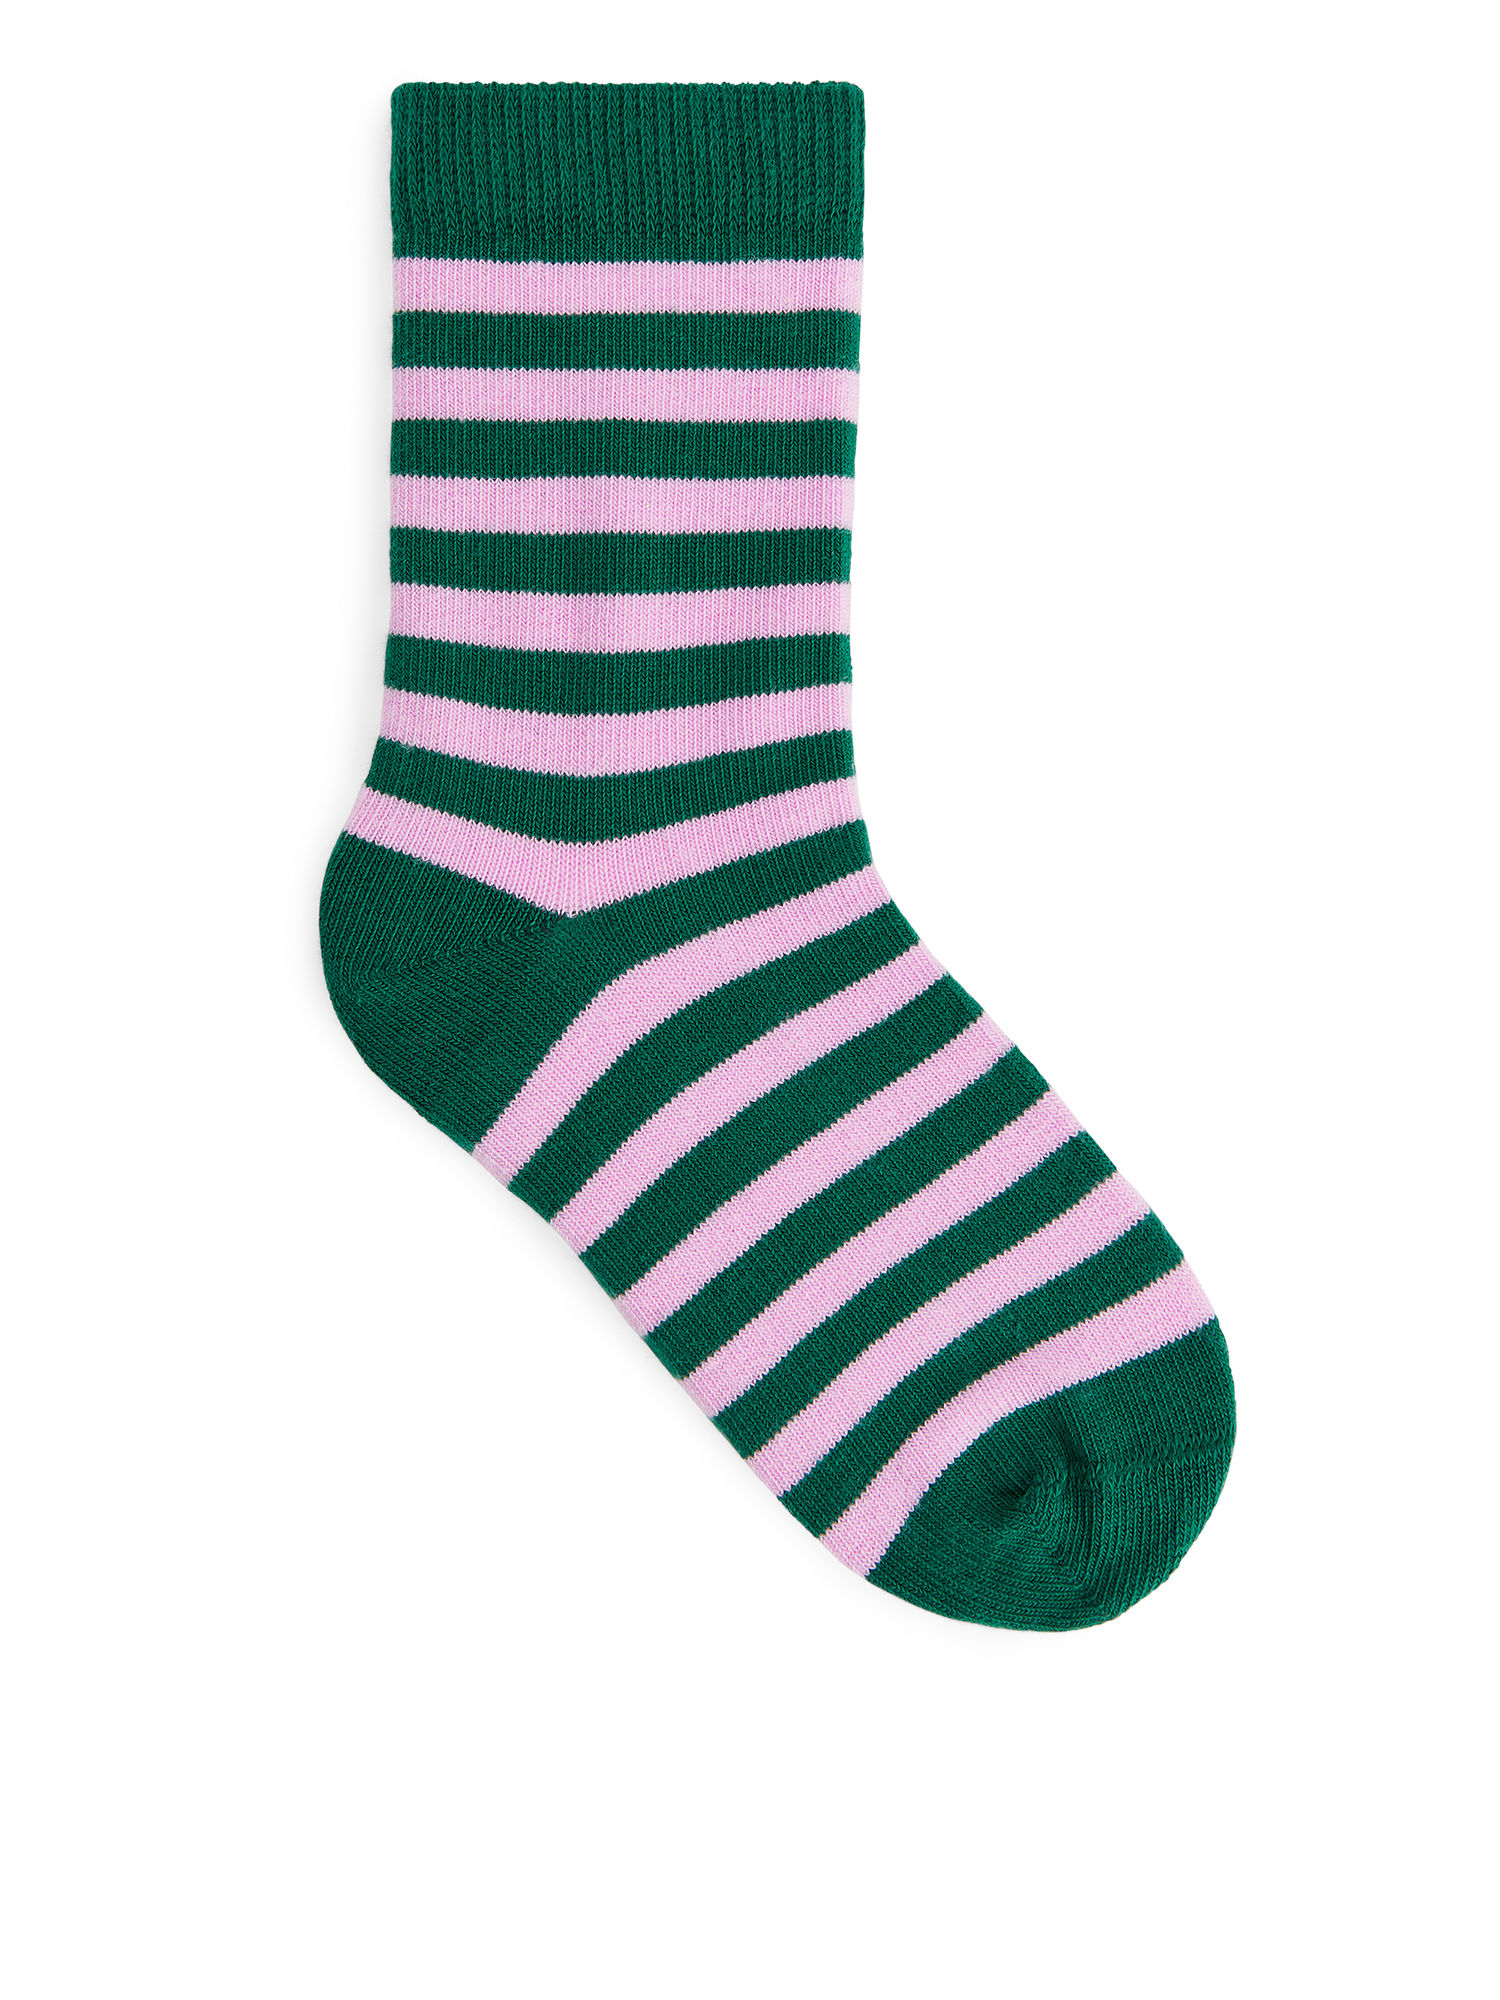 Fabric Swatch image of Arket striped socks, 2-pack in green